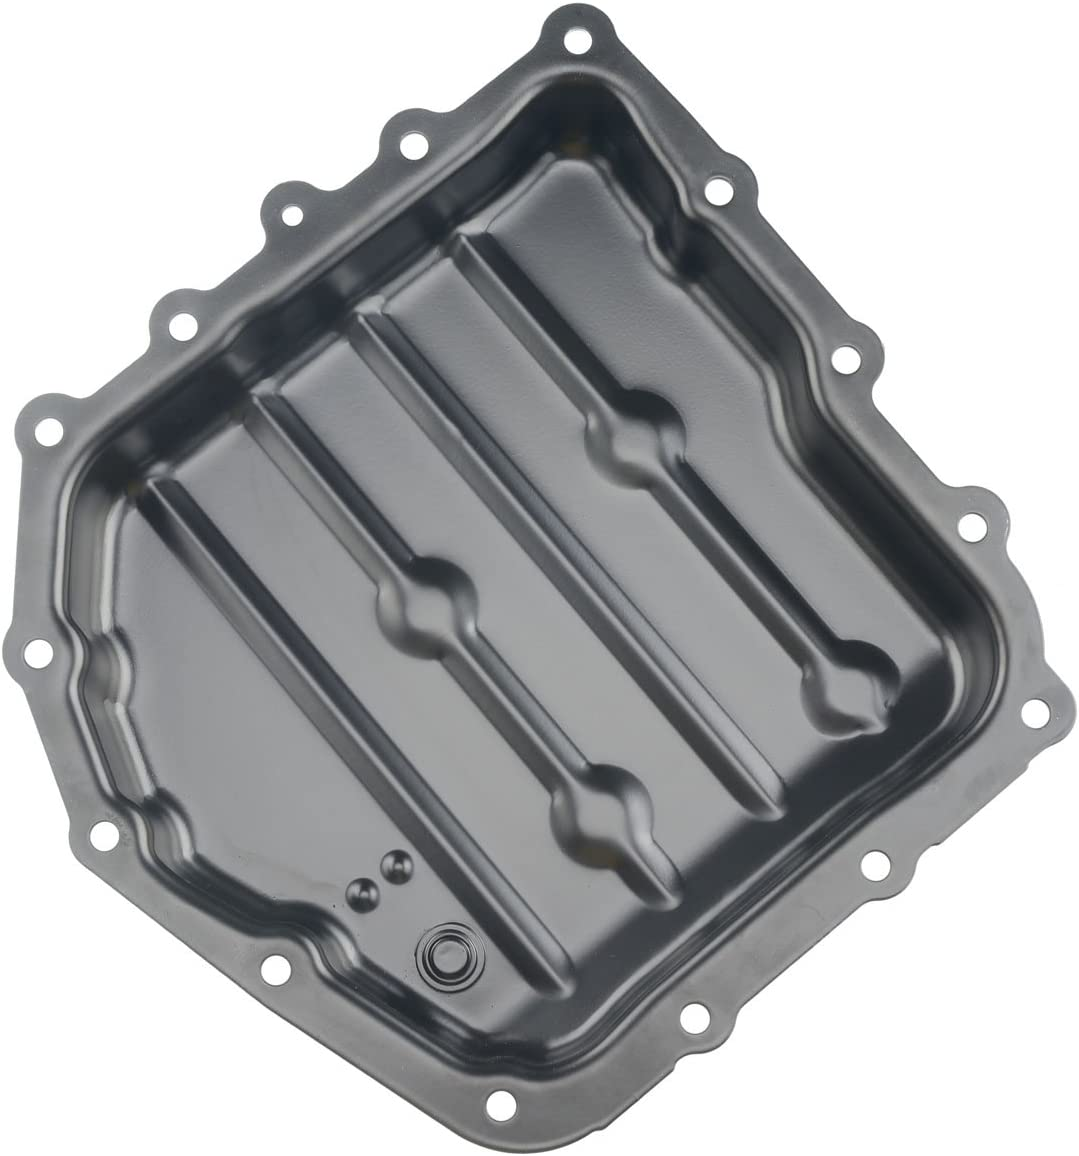 Transmission Oil Pan for Sebring Town /& Country Imperial Dodge Caravan Plymouth Eagle